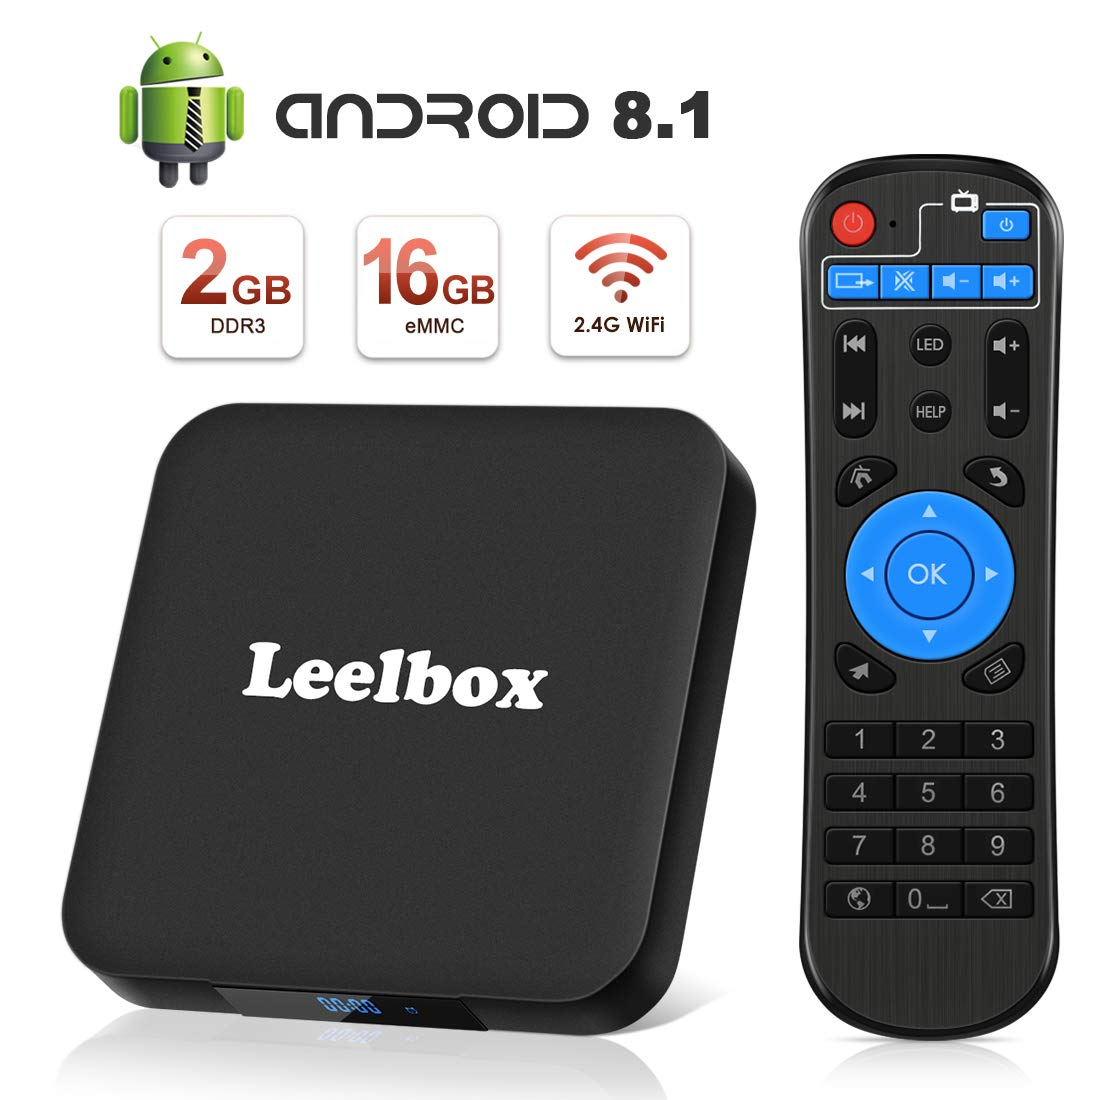 Android 8.1 TV Box, Leelbox Smart TV Box Quad Core 2GB RAM+16GB ROM, 4K*2K UHD H.265, HDMI, USB*2, WiFi Media Player, Android Set-Top Box: Amazon.es: Electrónica